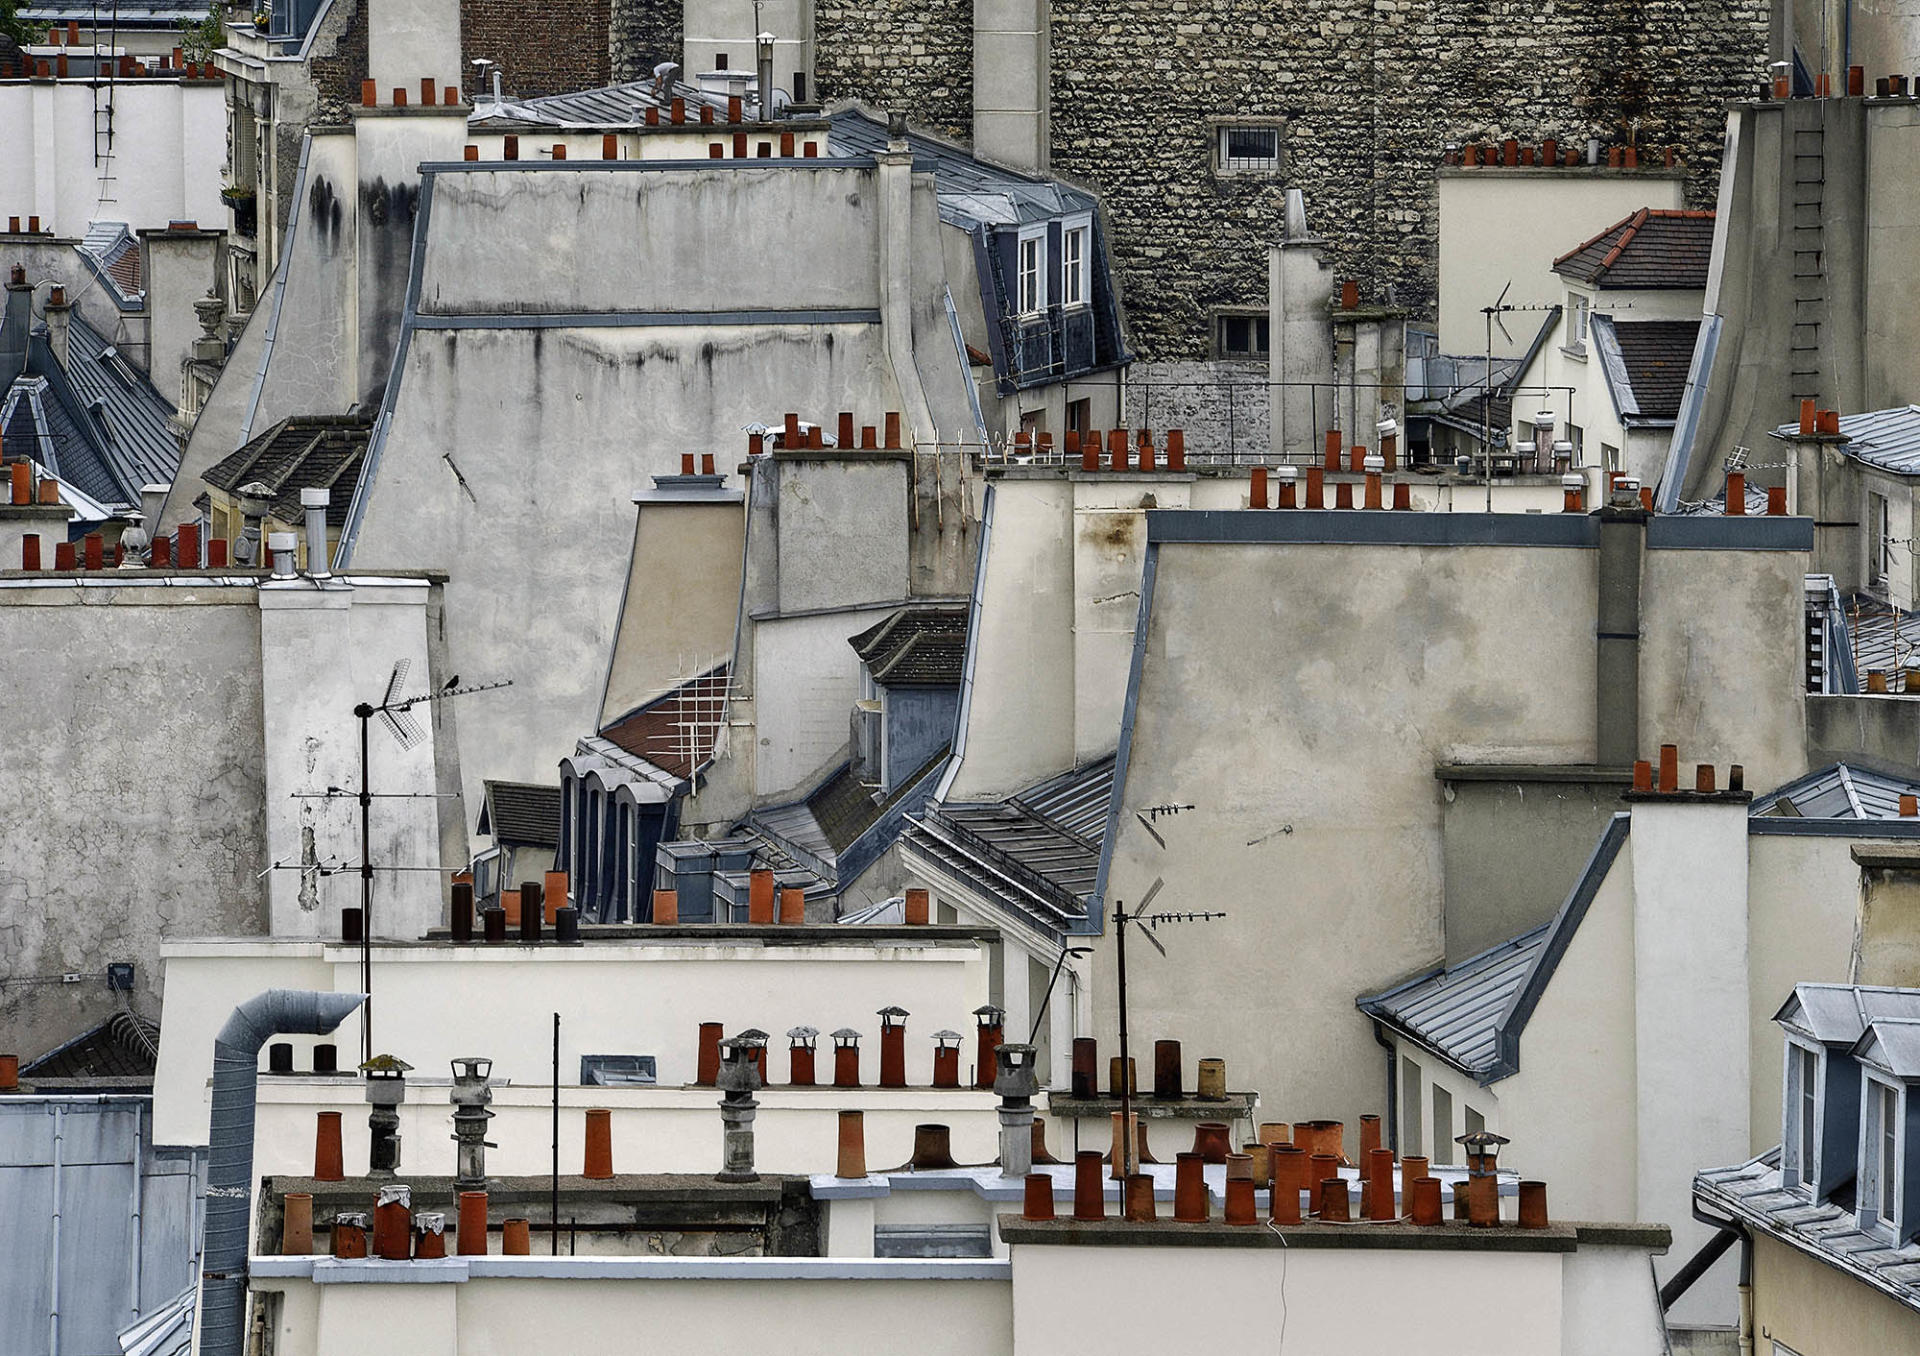 « Paris Rooftop #1 », 2014